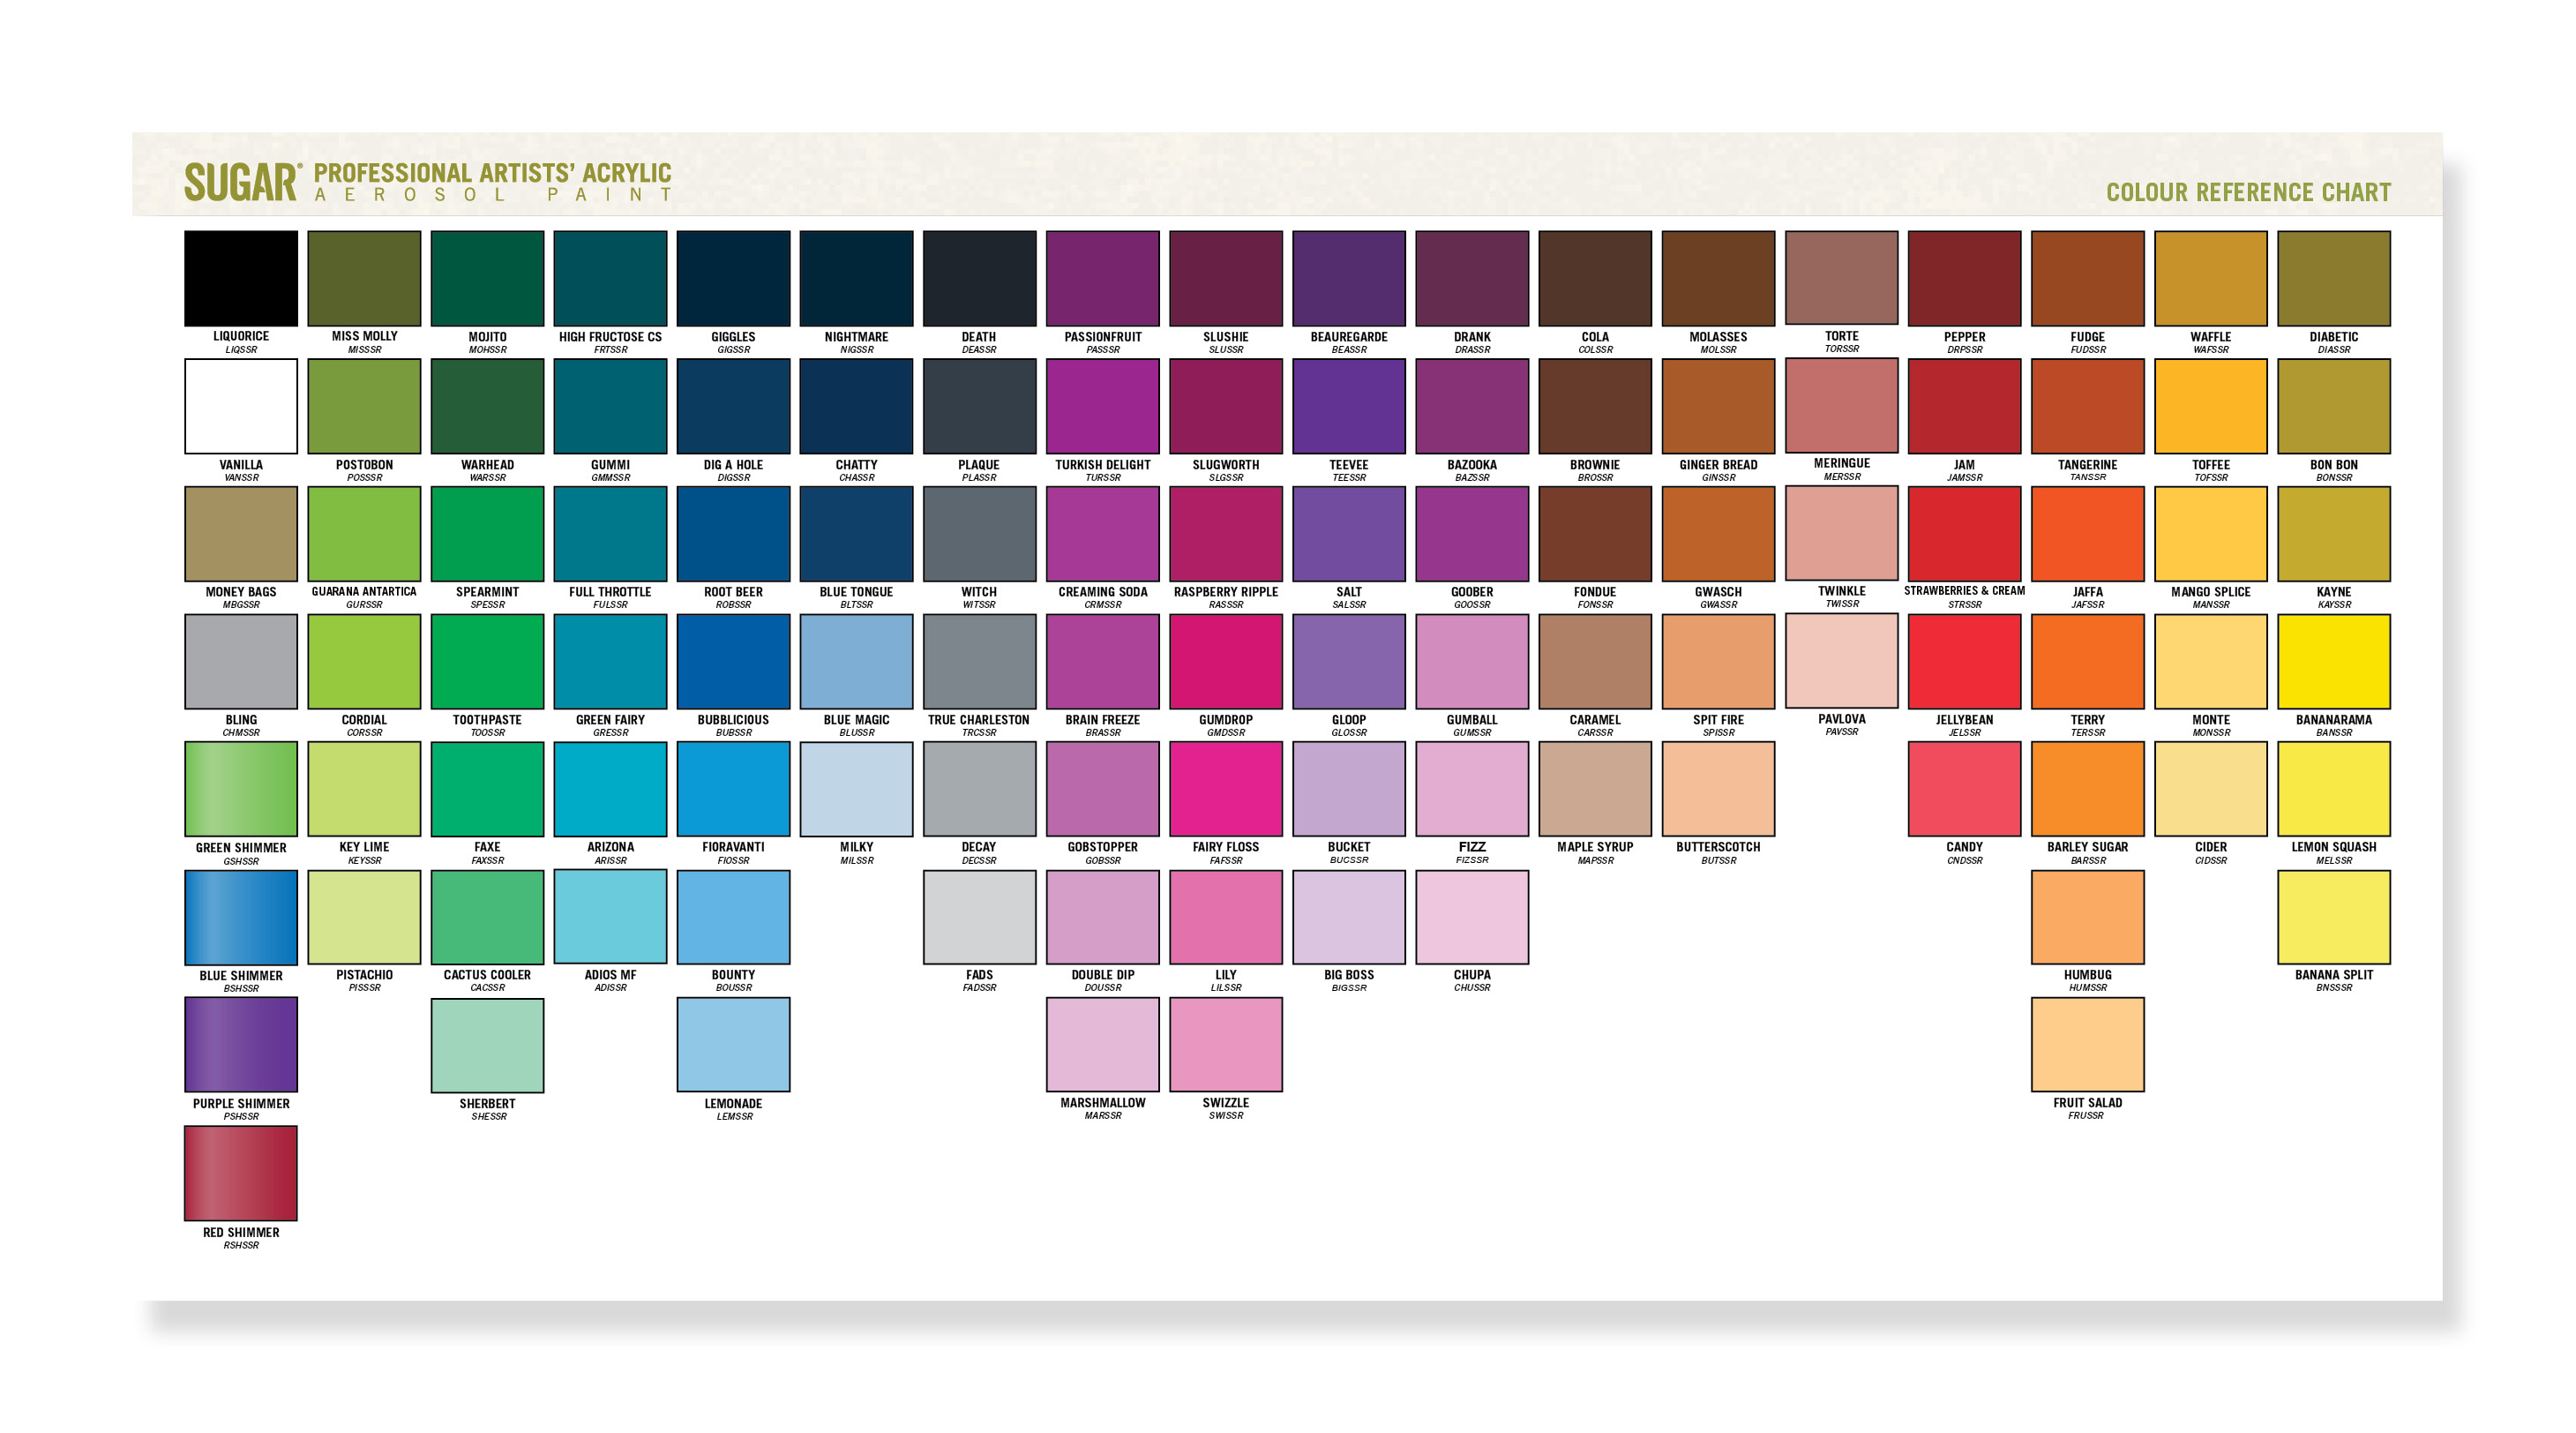 Sugar artists acrylic meadhbh tobin colour chart point of sale geenschuldenfo Image collections